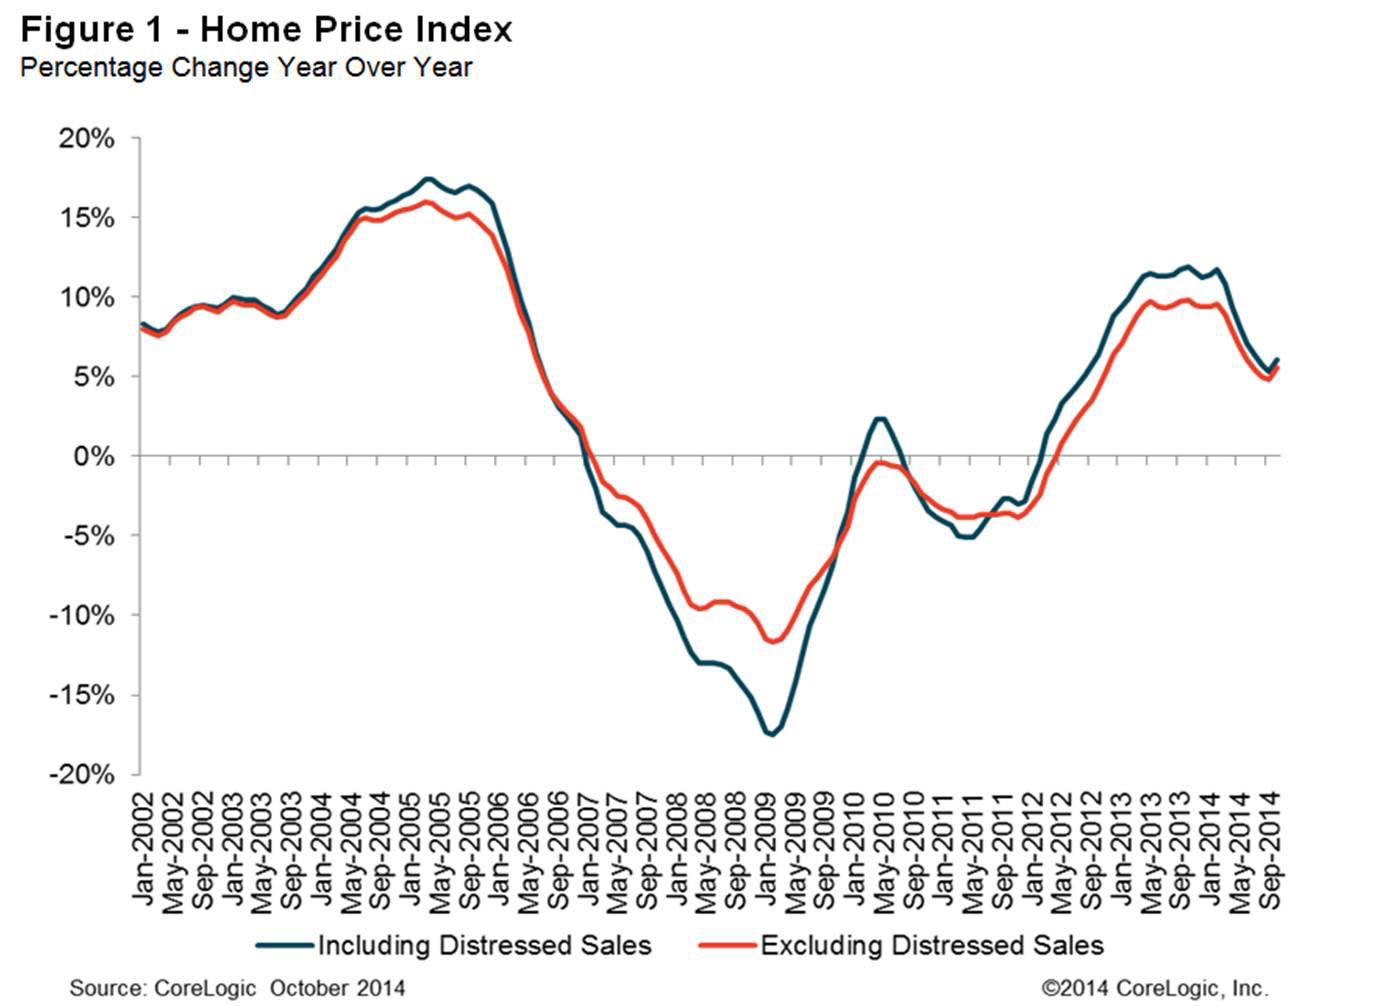 Home Price Index Percentage Change Year Over Year Corelogic Reports More  Than Half Of States At